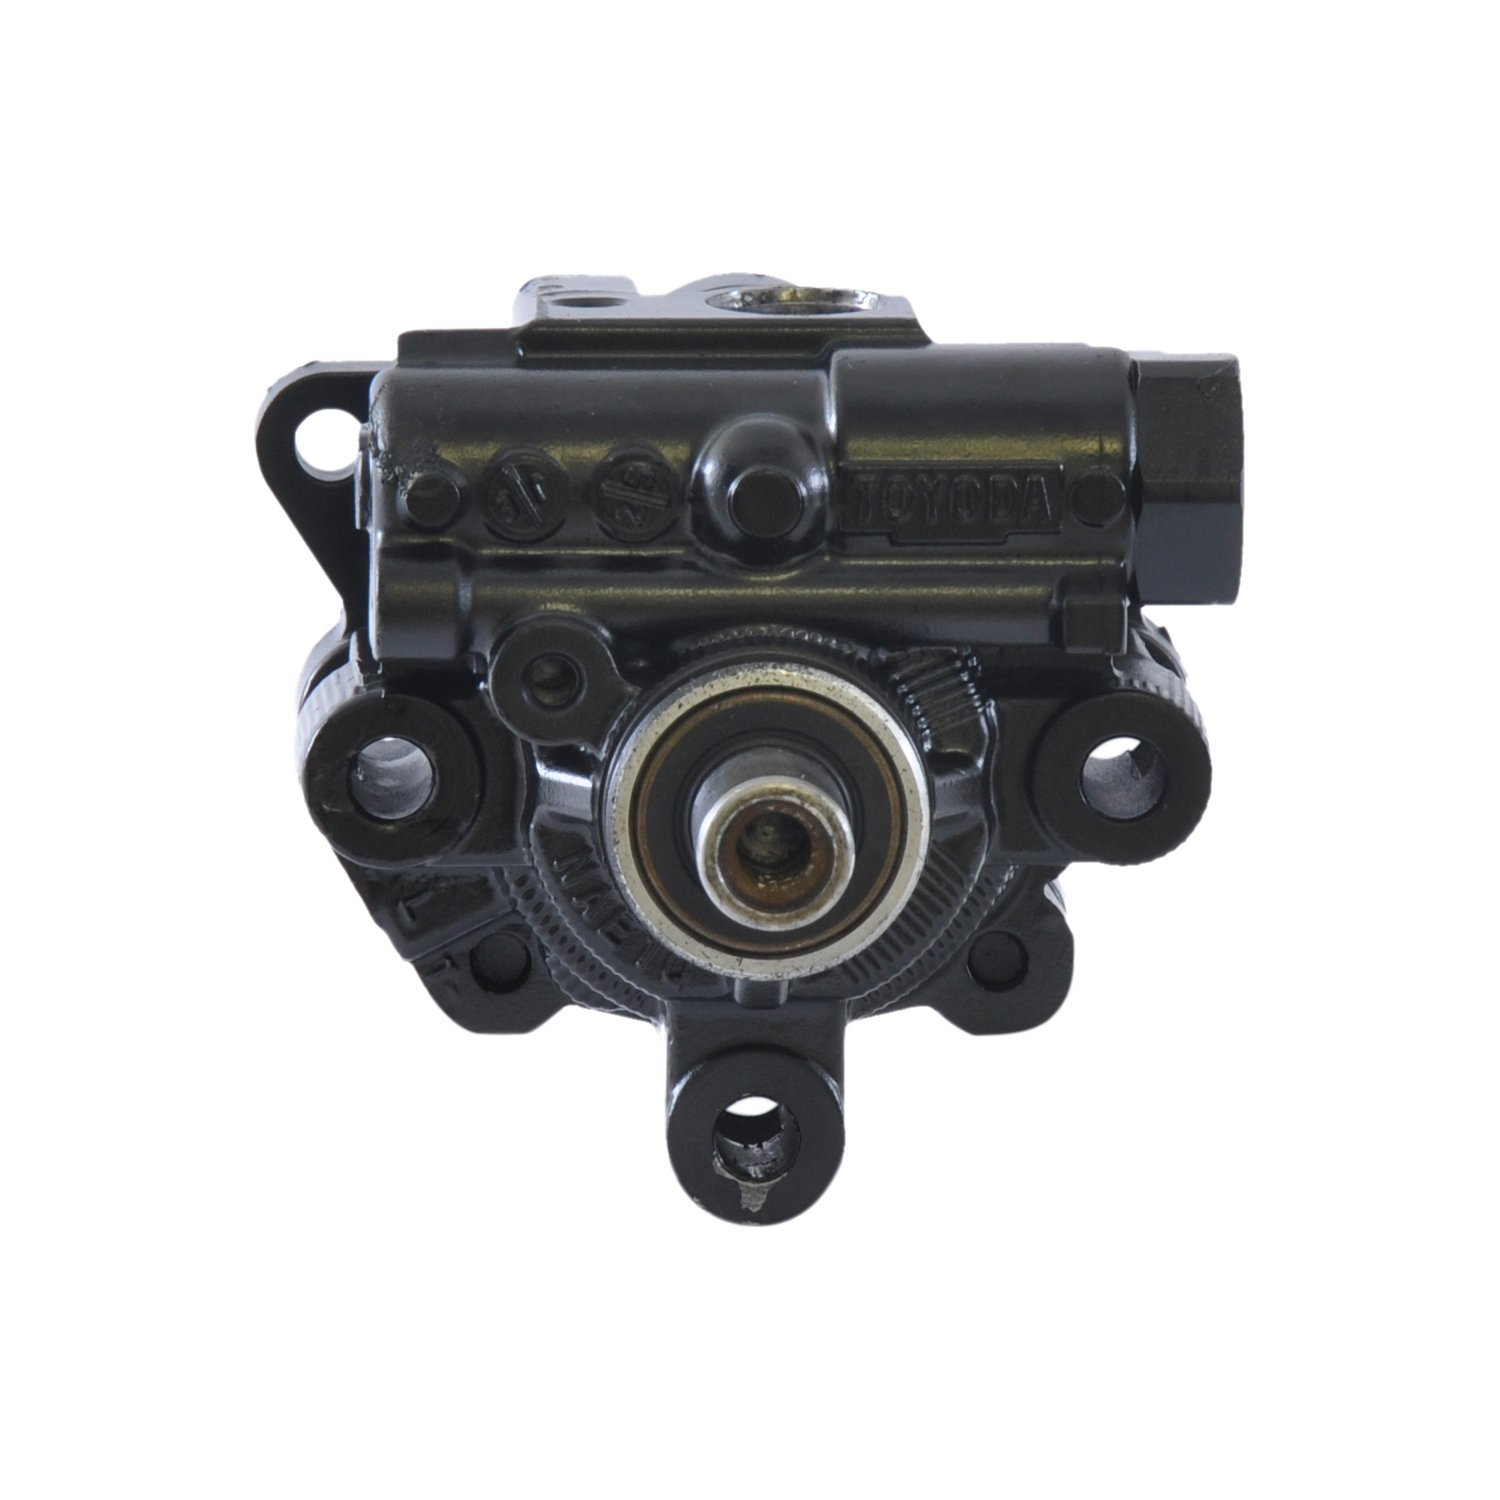 Remanufactured ACDelco 36P1120 Professional Power Steering Pump